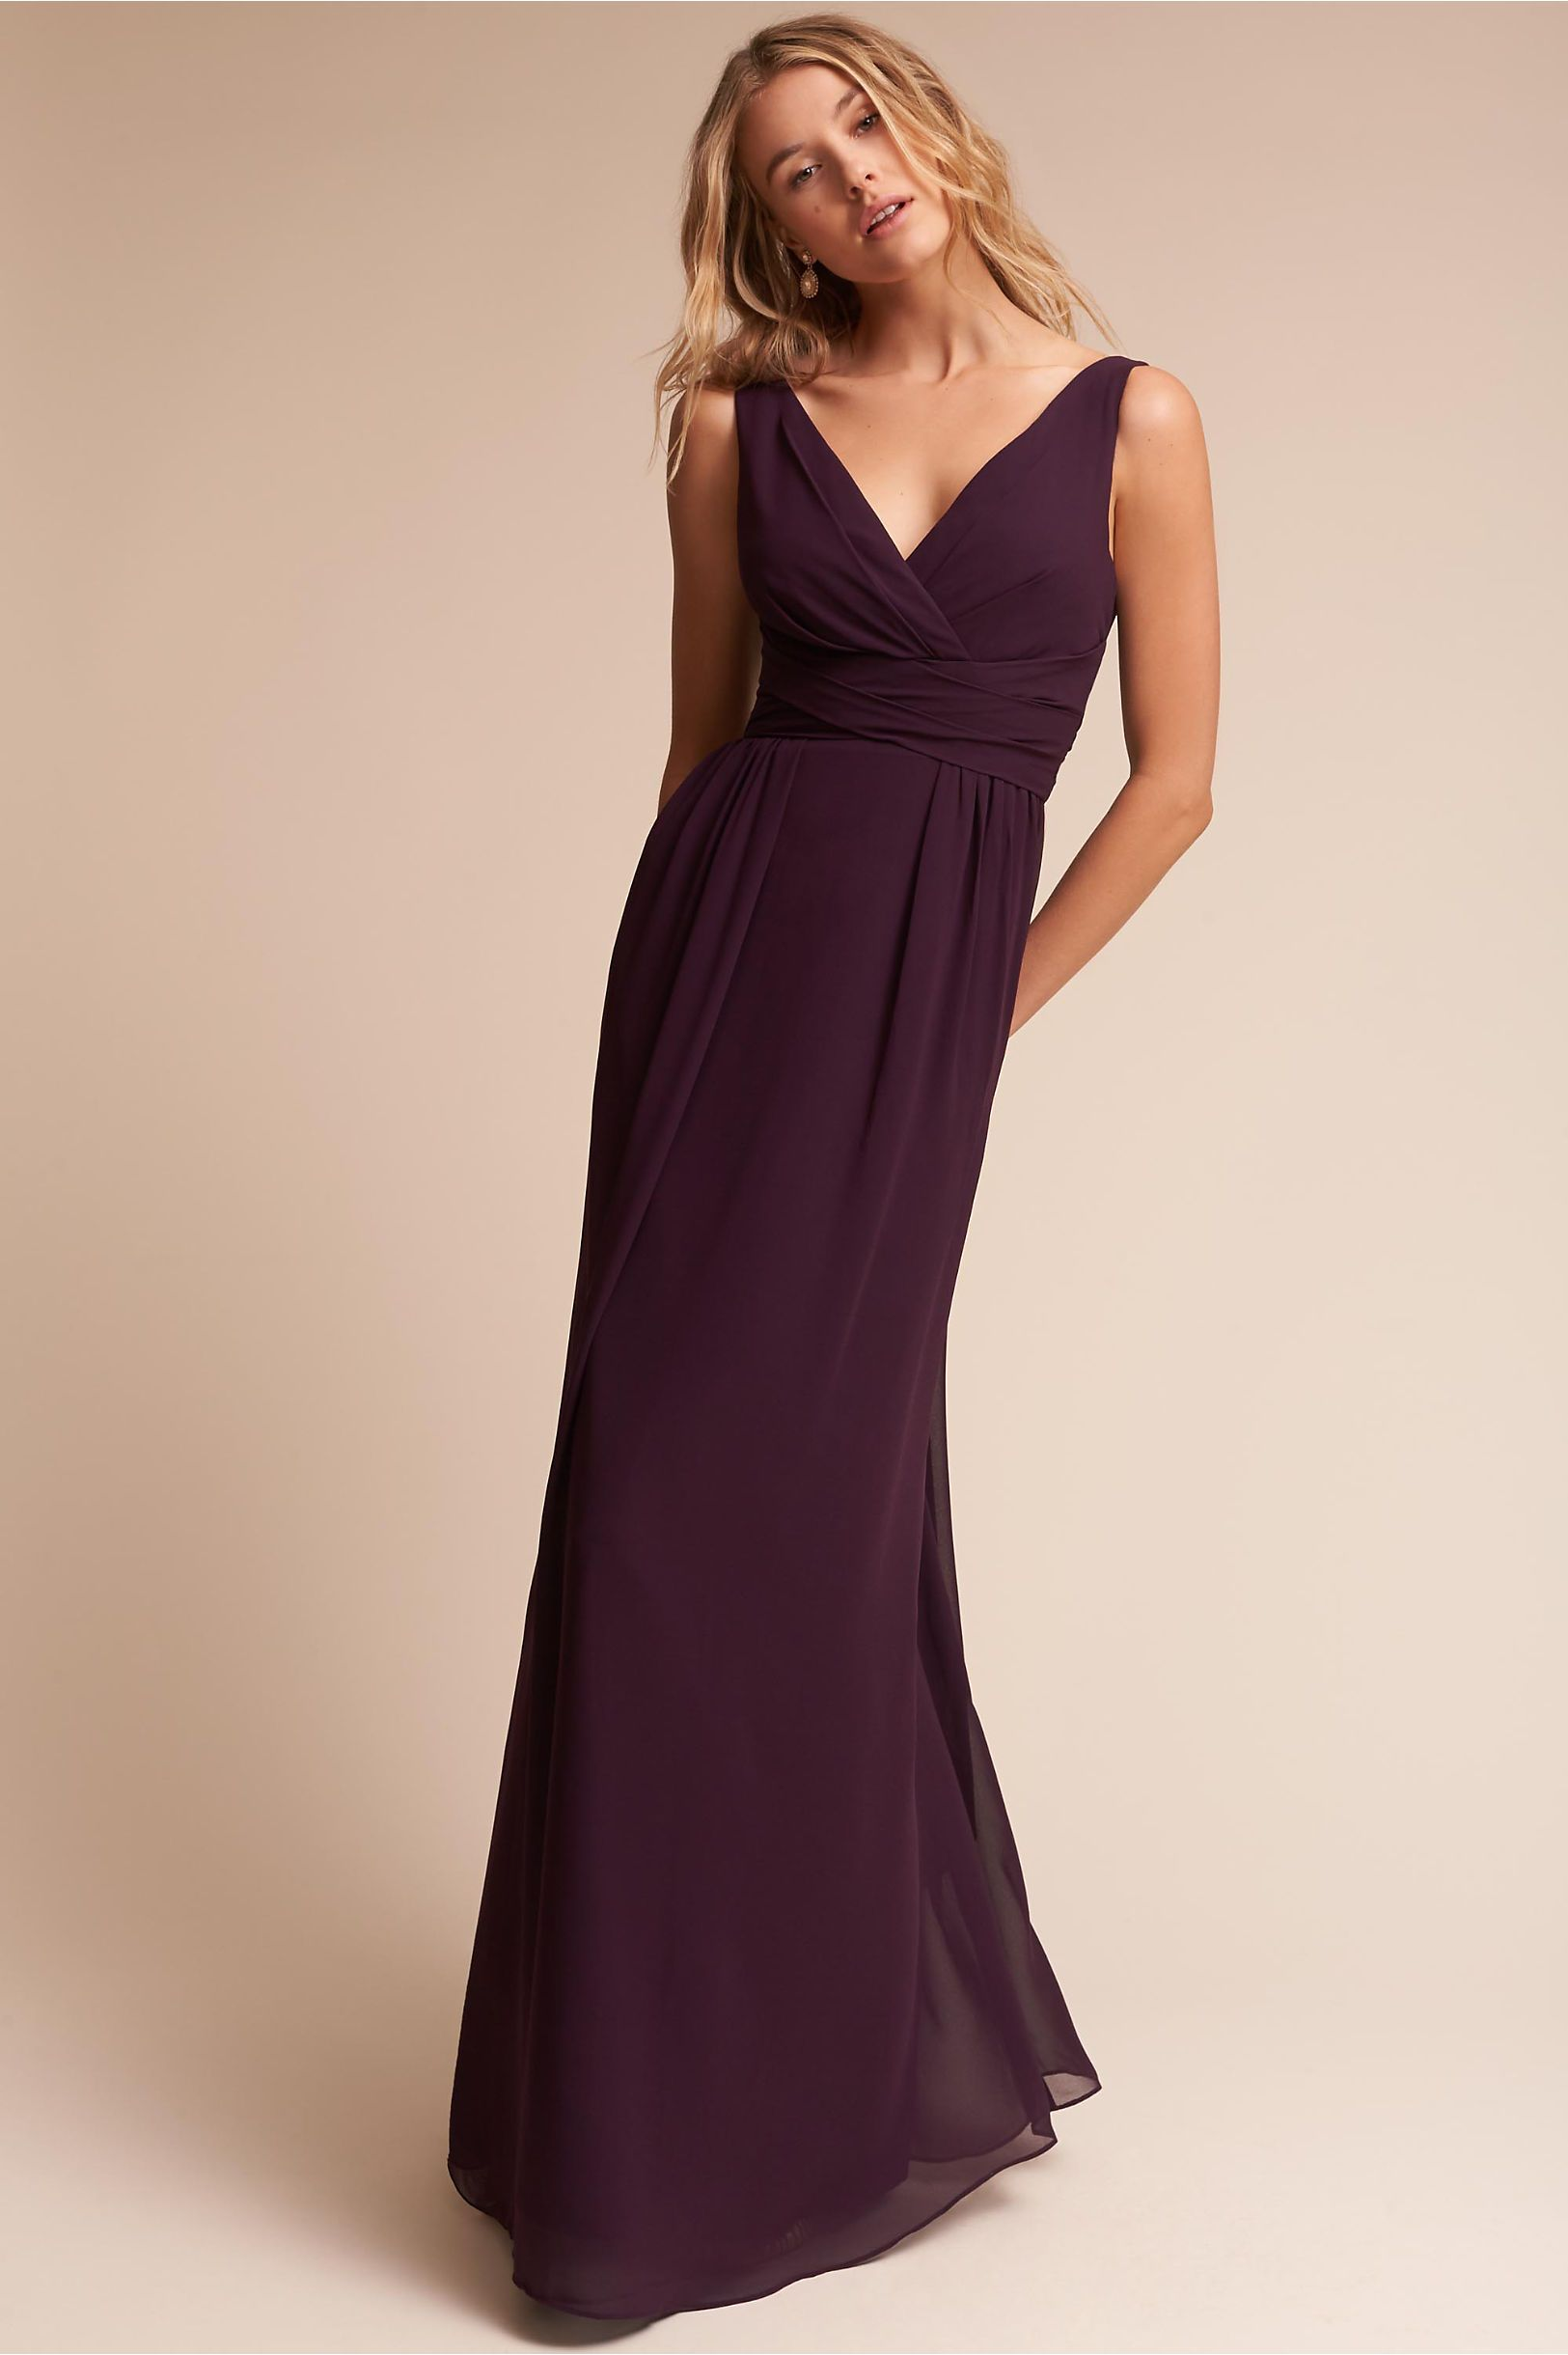 92541ce1b0 BHLDN Carnegie Dress in Bridal Party View All Dresses